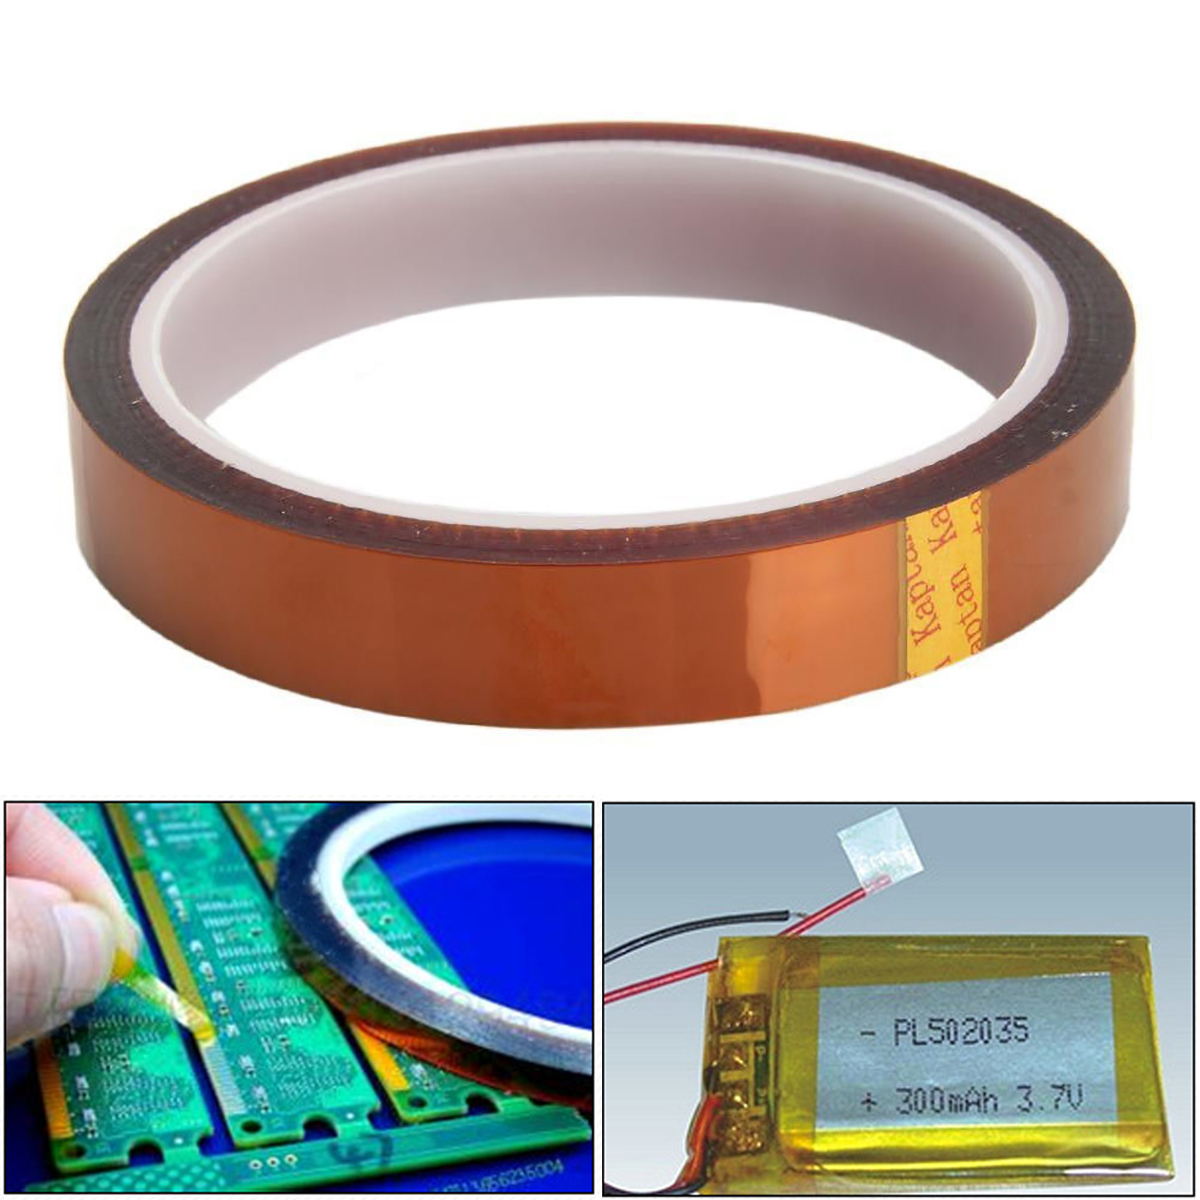 insulation-polyimide-tape-15mm-width-33m-length-adhesive-high-temperature-heat-resistant-soldering-tapes-for-bga-reworks-mayitr